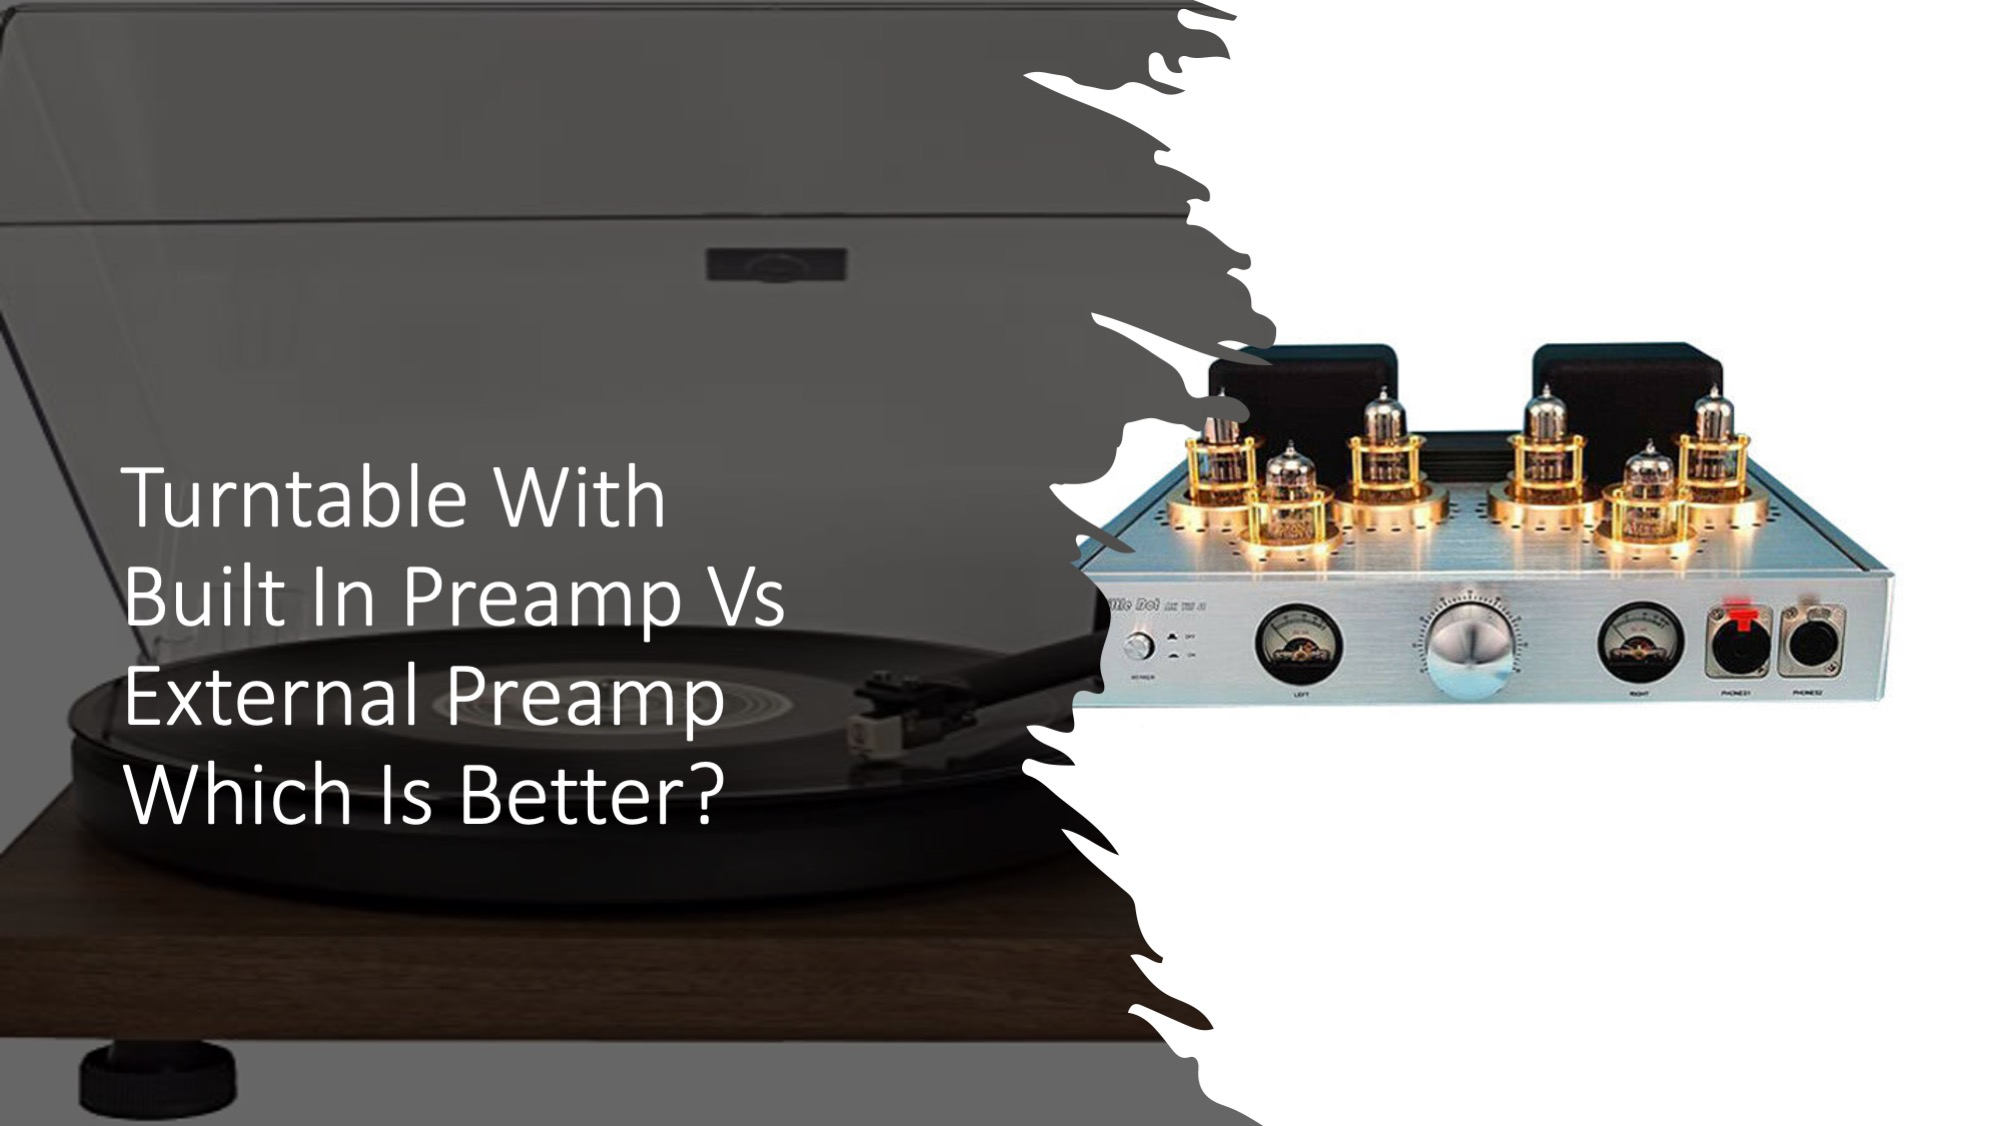 Turntable With Built In Preamp Vs External Preamp Which Is Better?